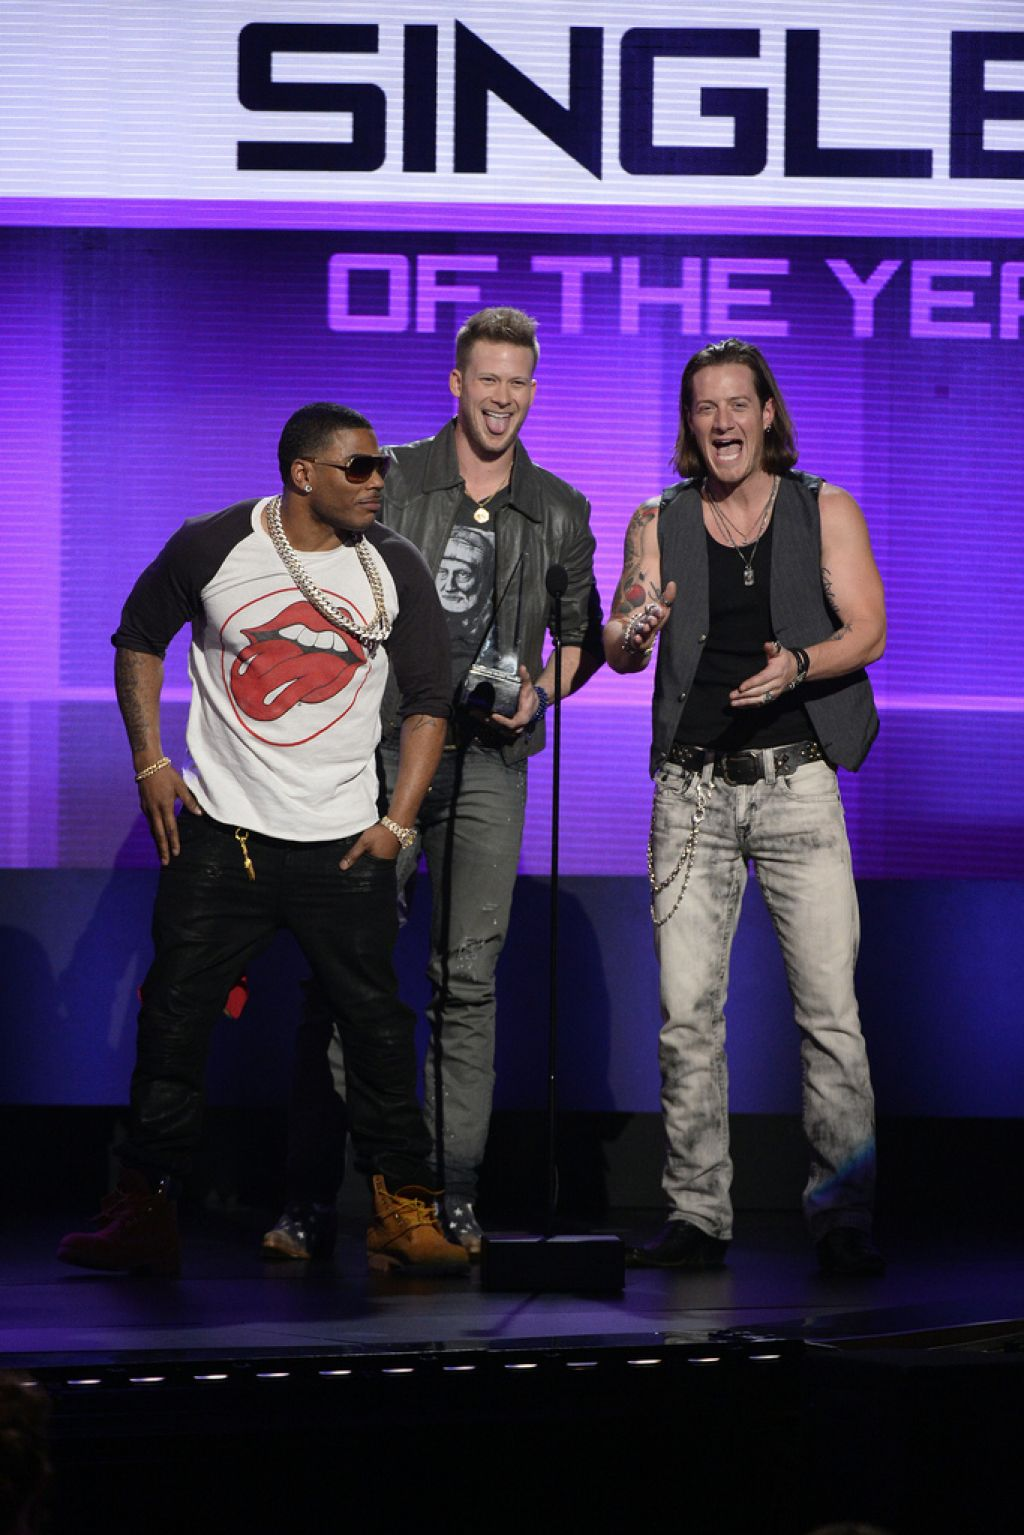 american music awards7 American Music Awards 2013 Winners